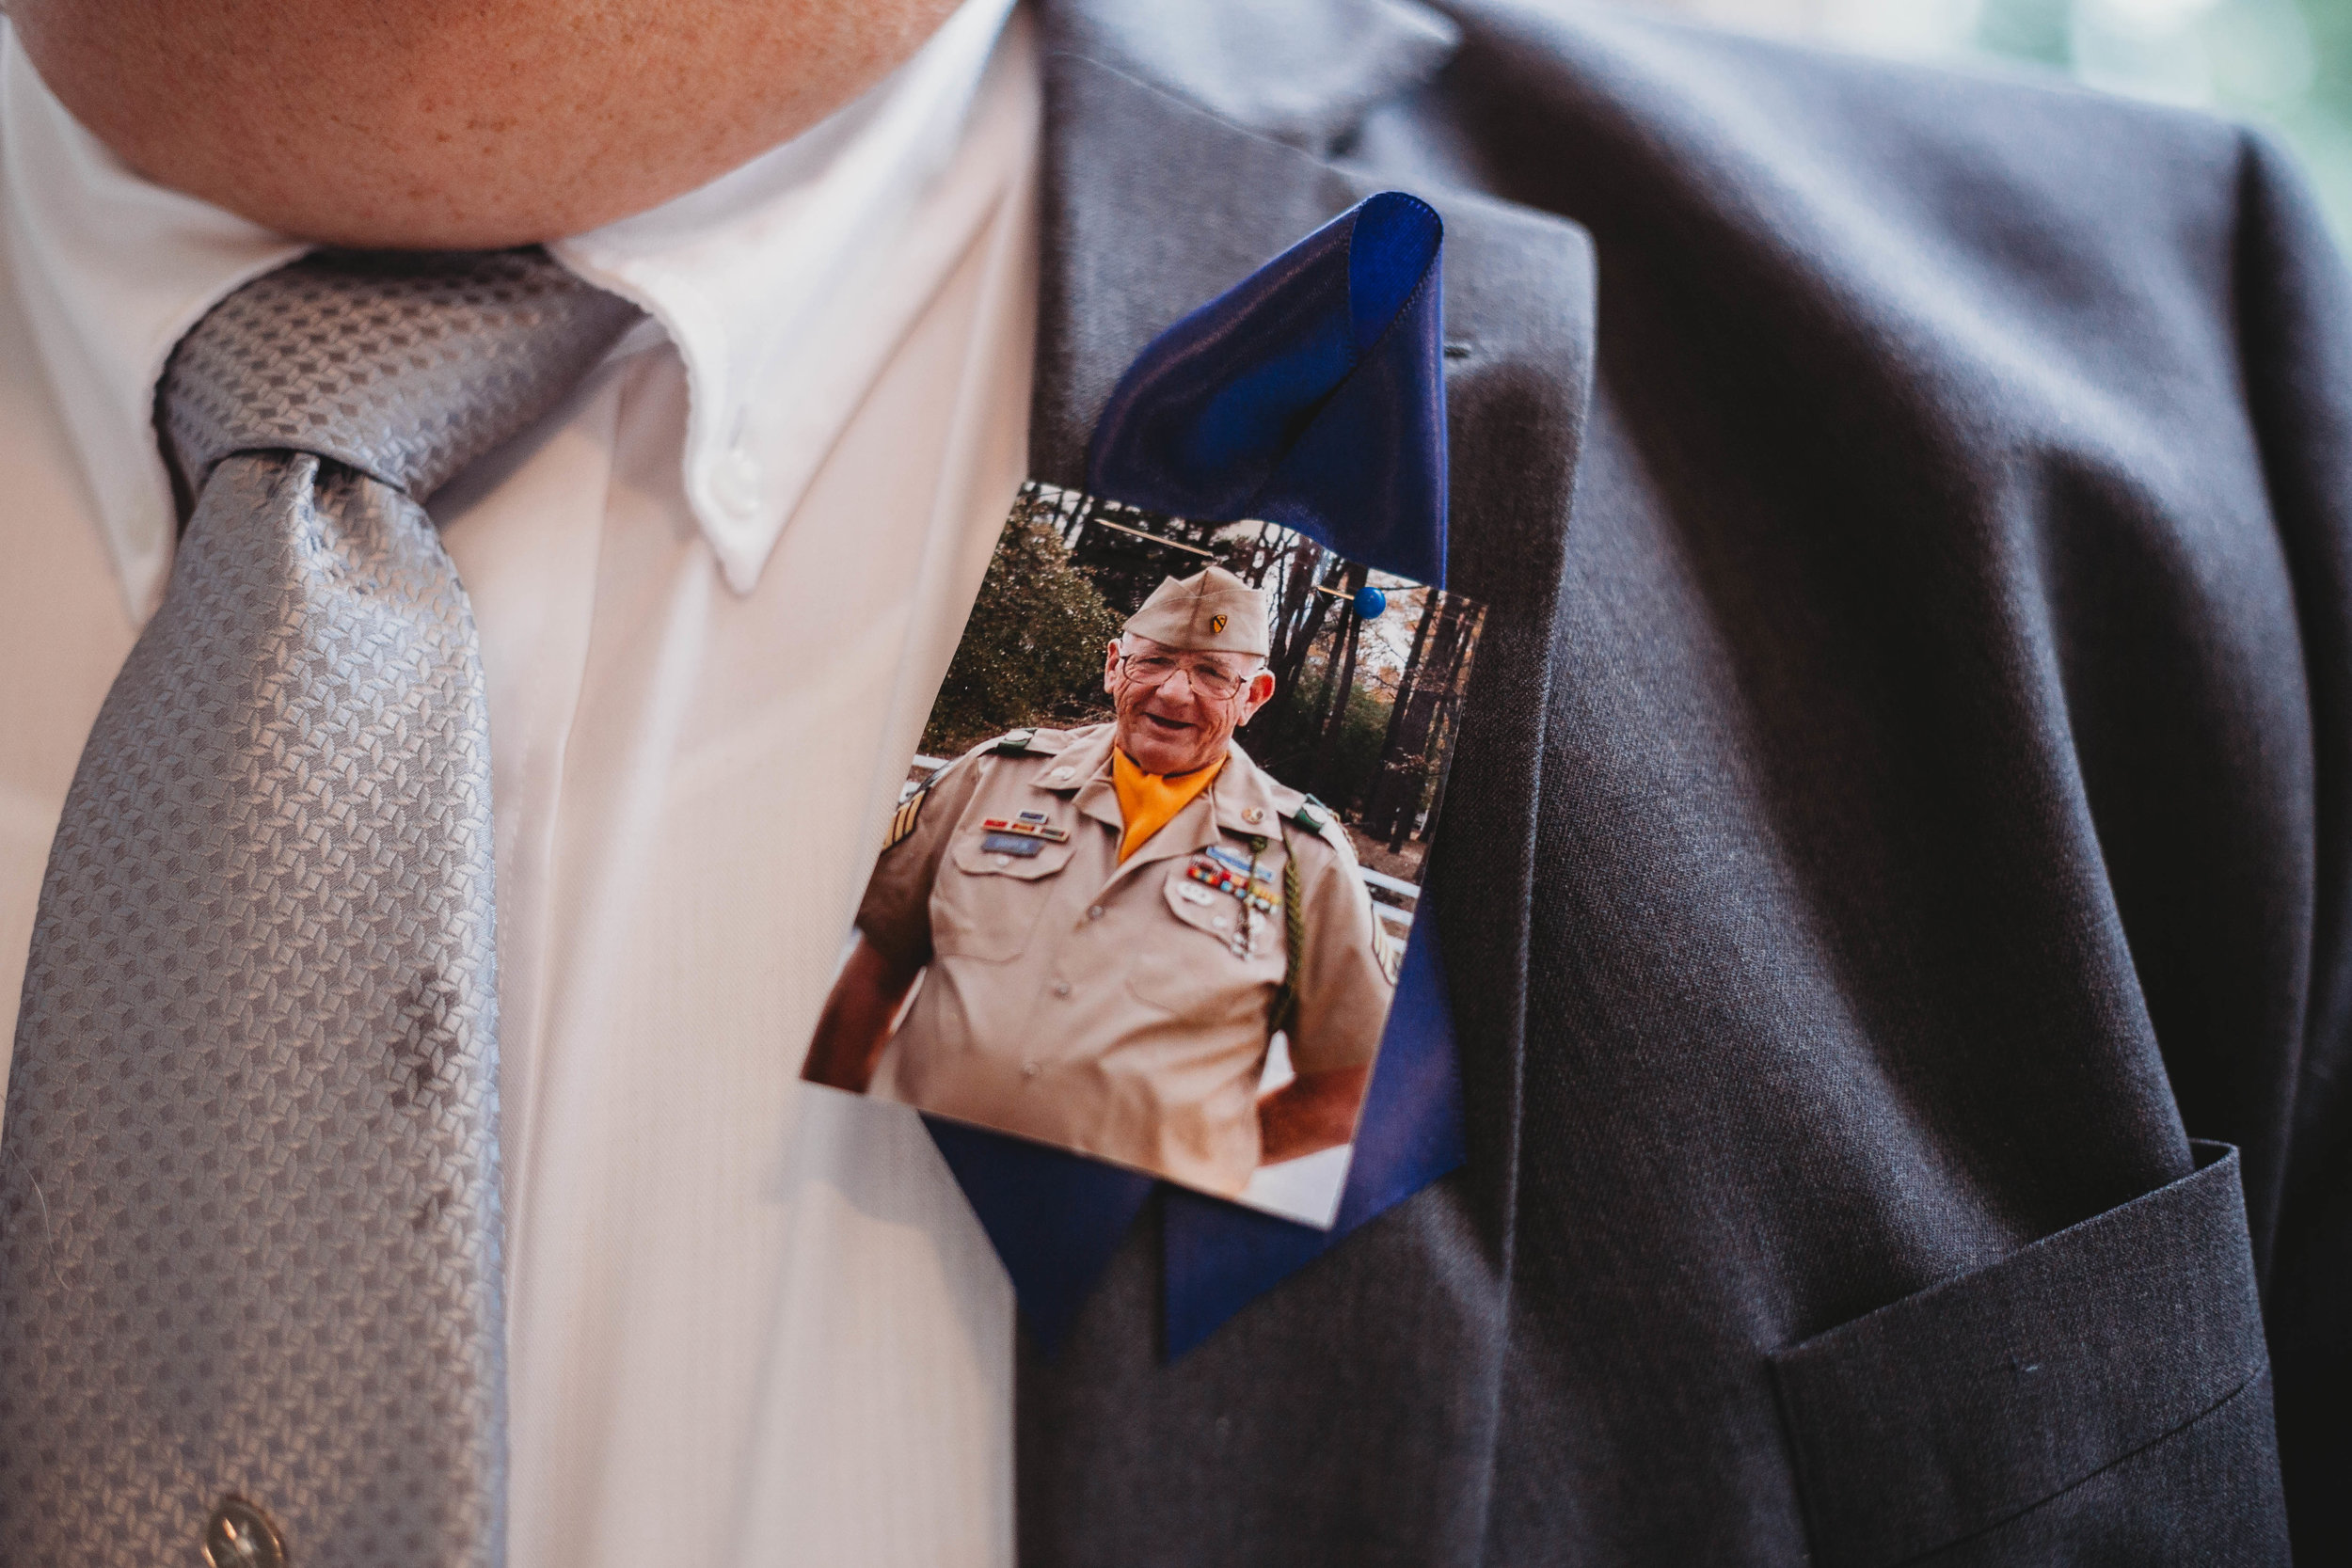 This lovely gentleman was Katie's dad's stand-in for the dance. He proudly wore a photo of Katie's dad pinned to his jacket. He had also recently suffered the loss of his wife. It was a very emotional day.